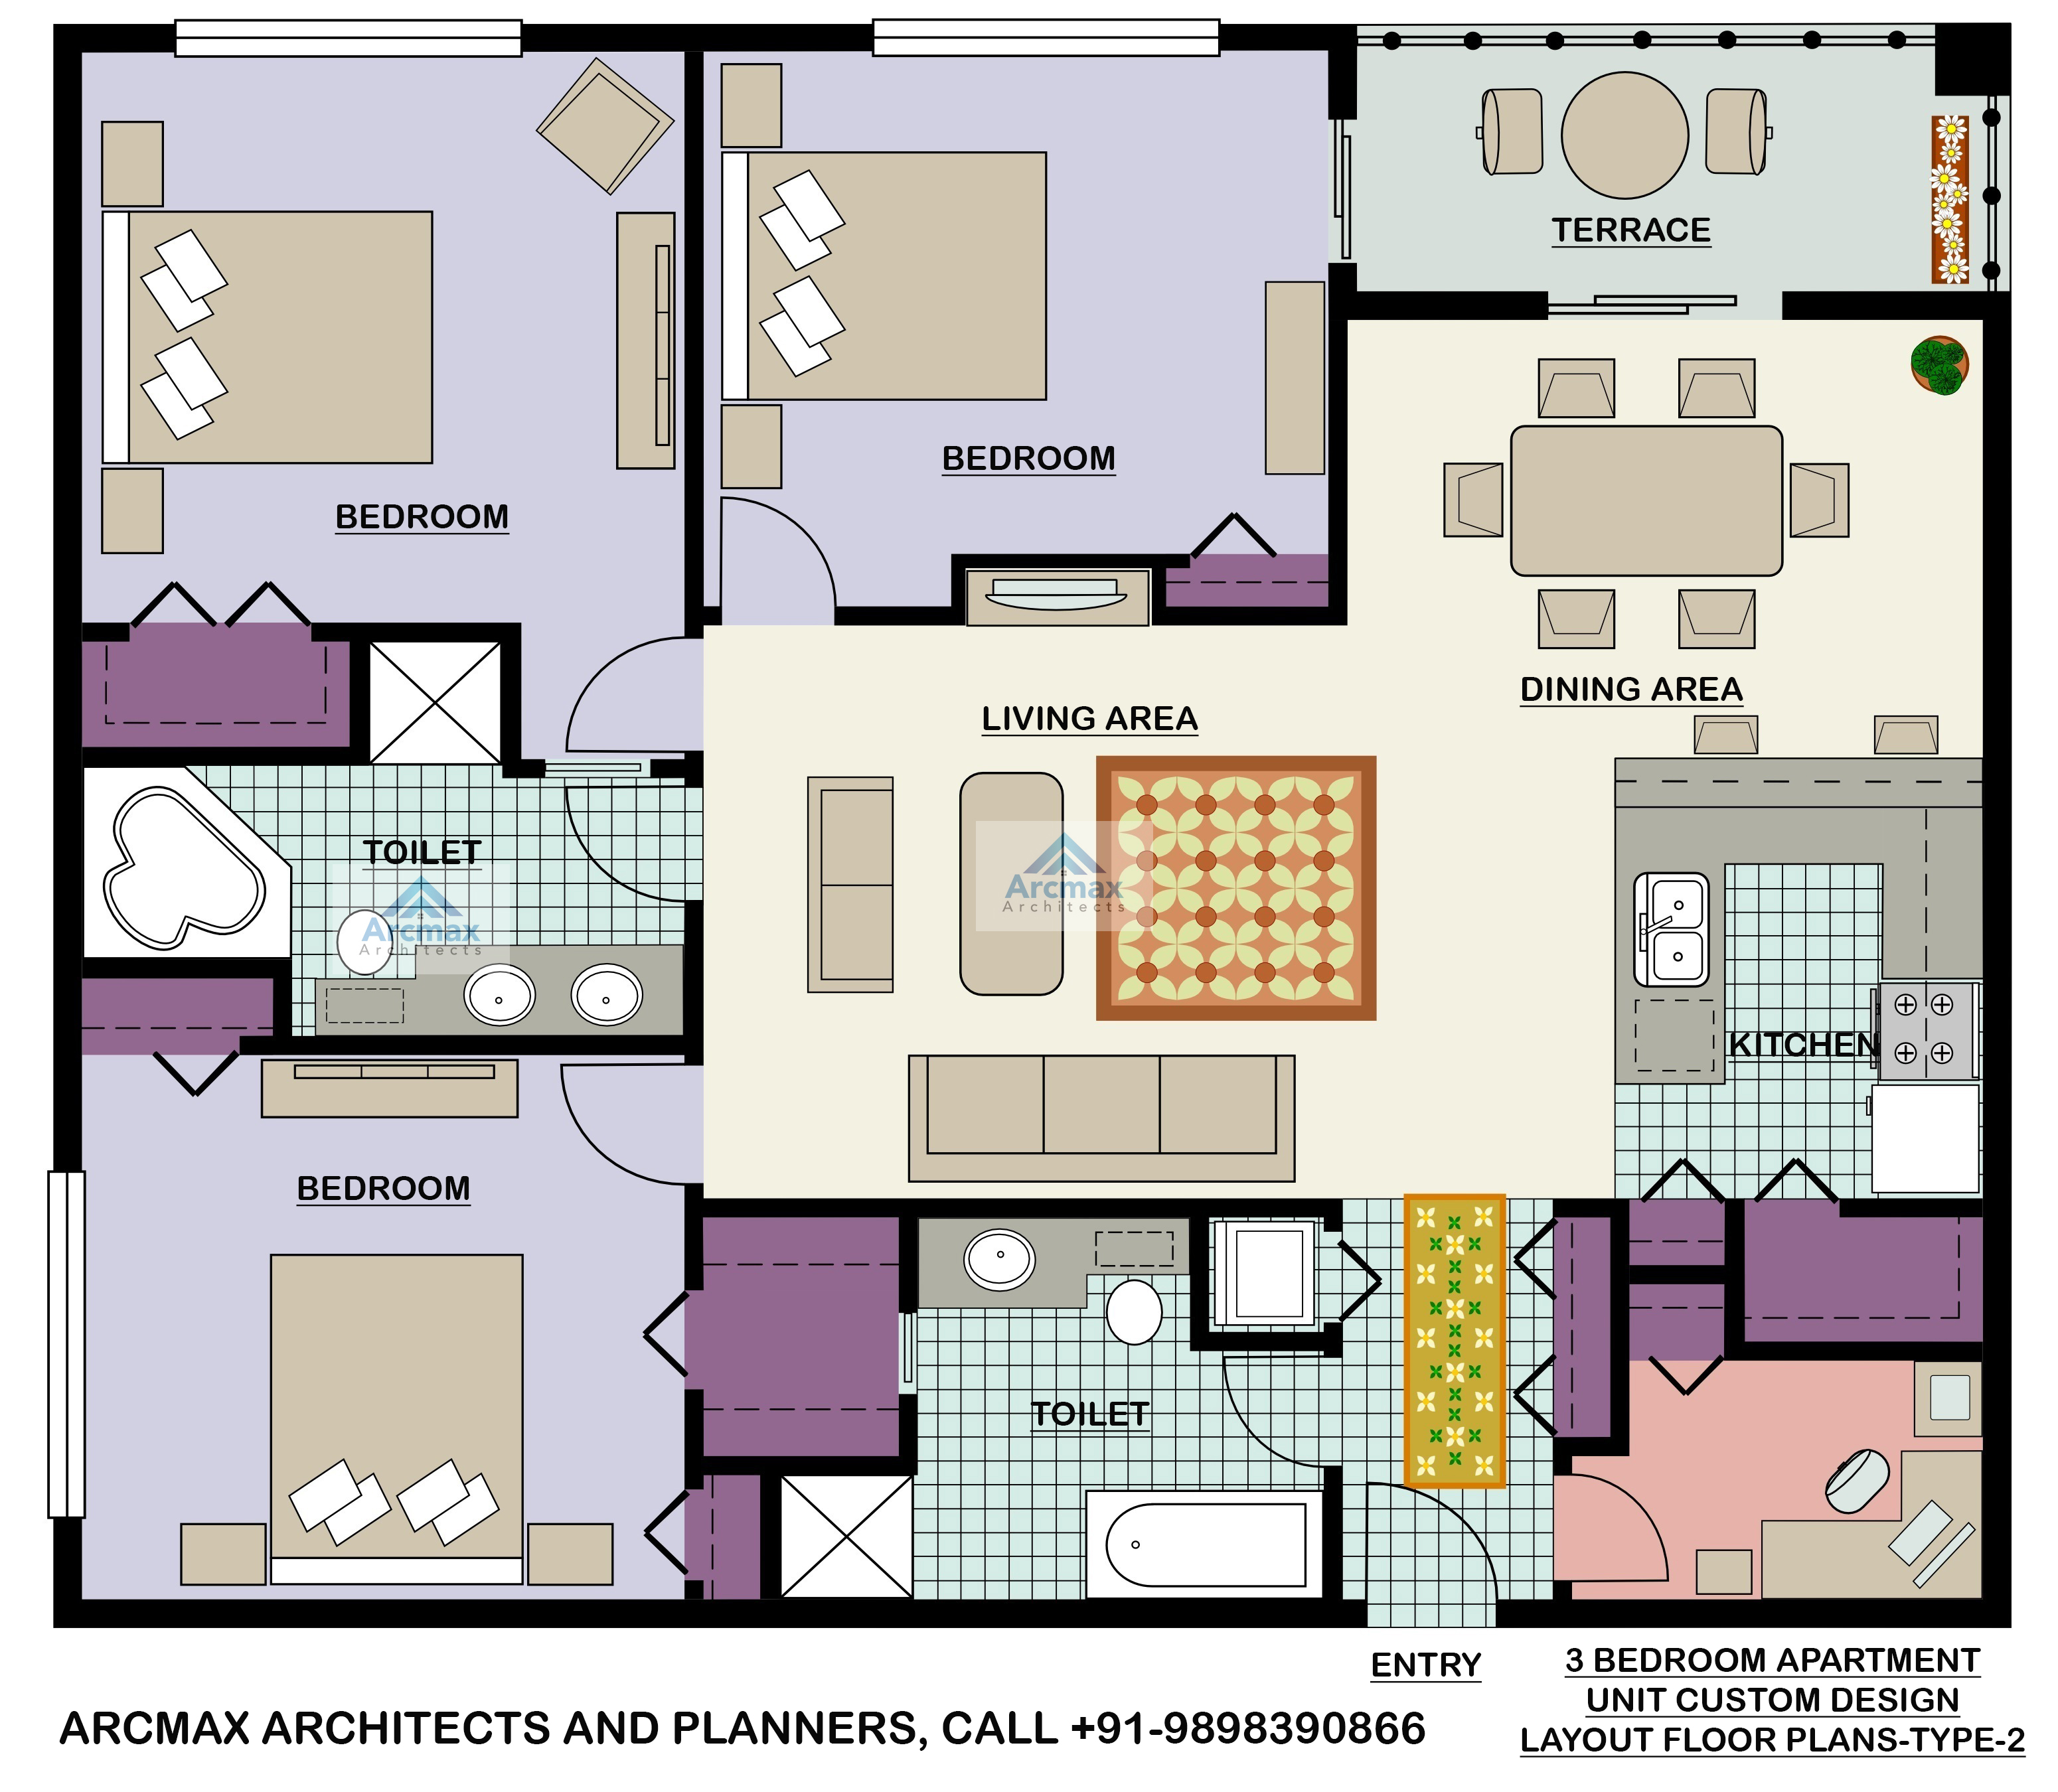 Apartment Floor Plans: Home Plans And Residence Plans